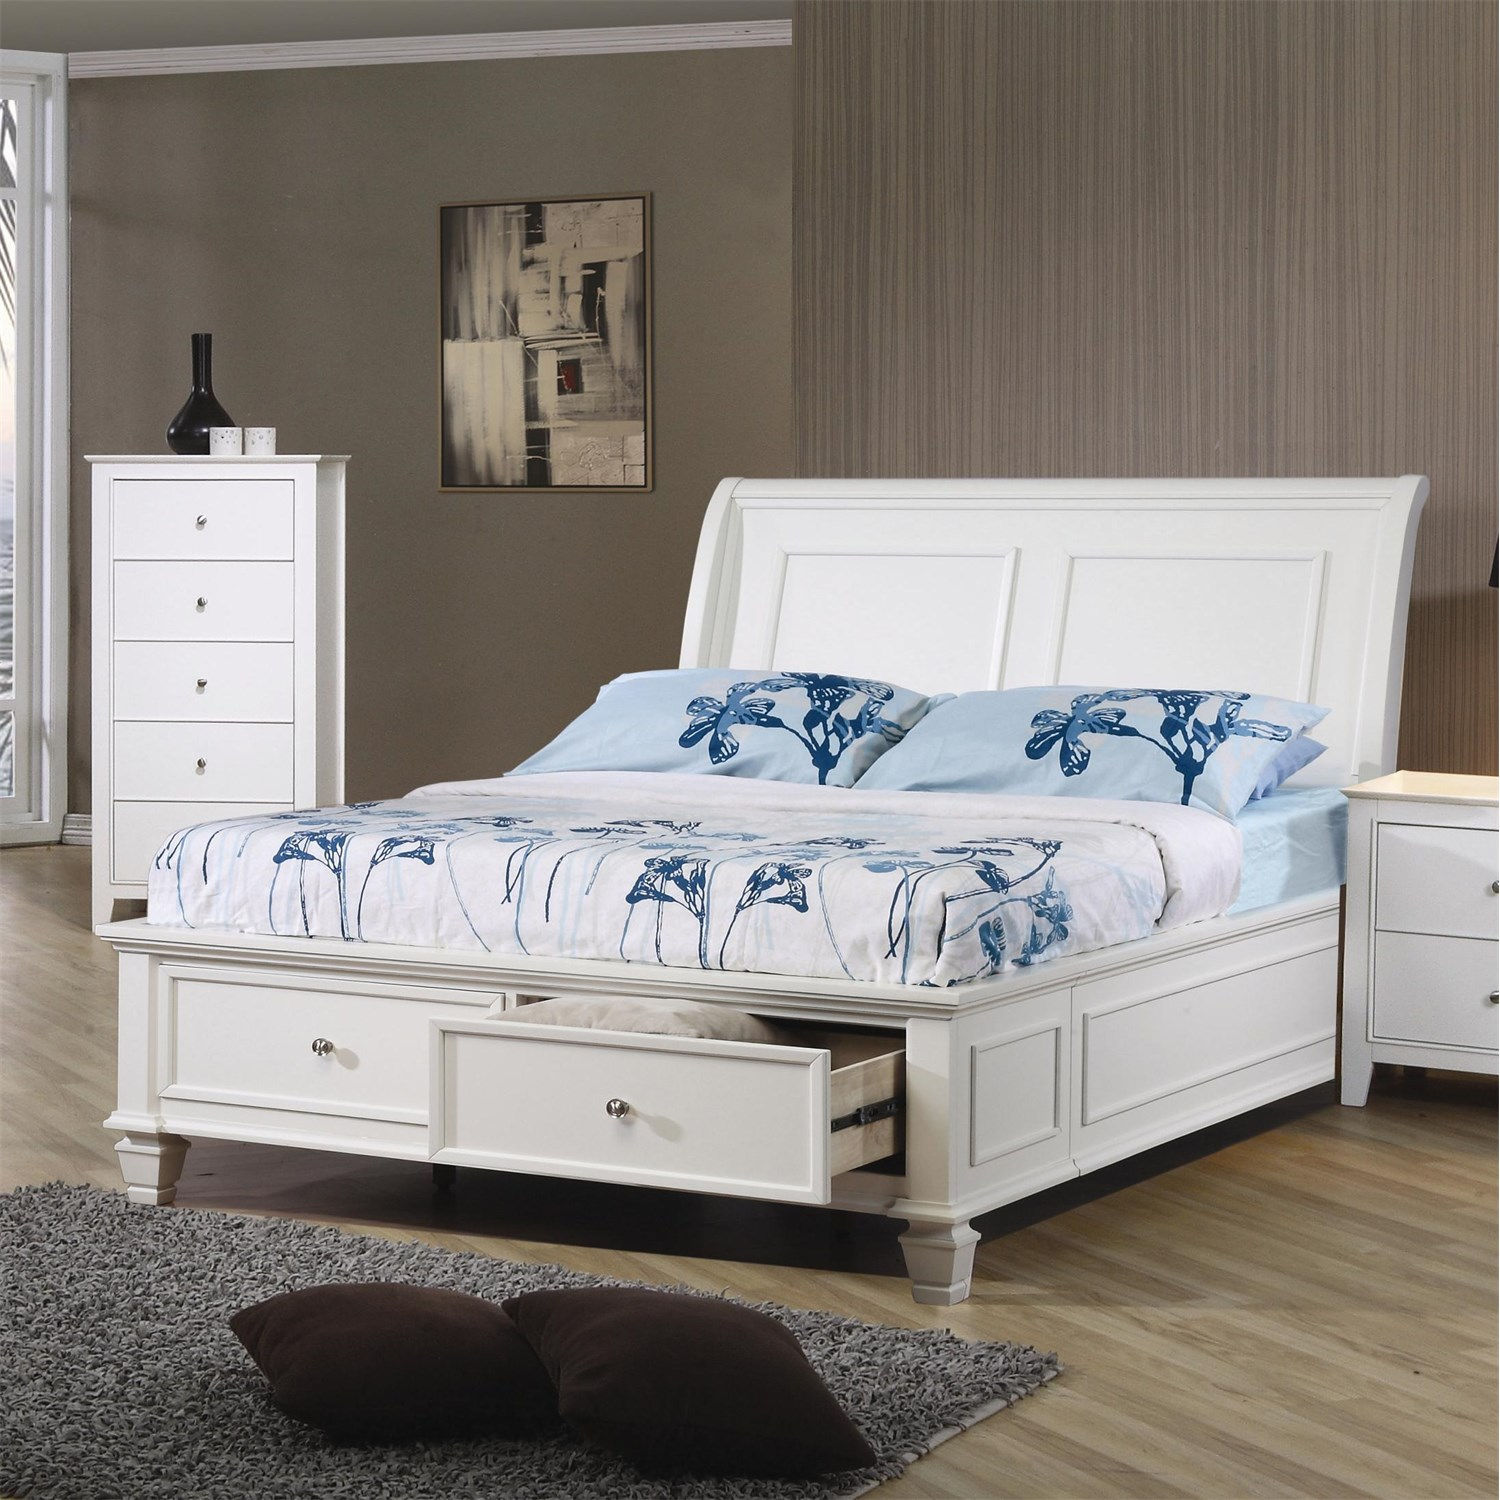 Sandy Beach Whtie California King Sleigh Bed With Footboard Storage Oc Homestyle Furniture